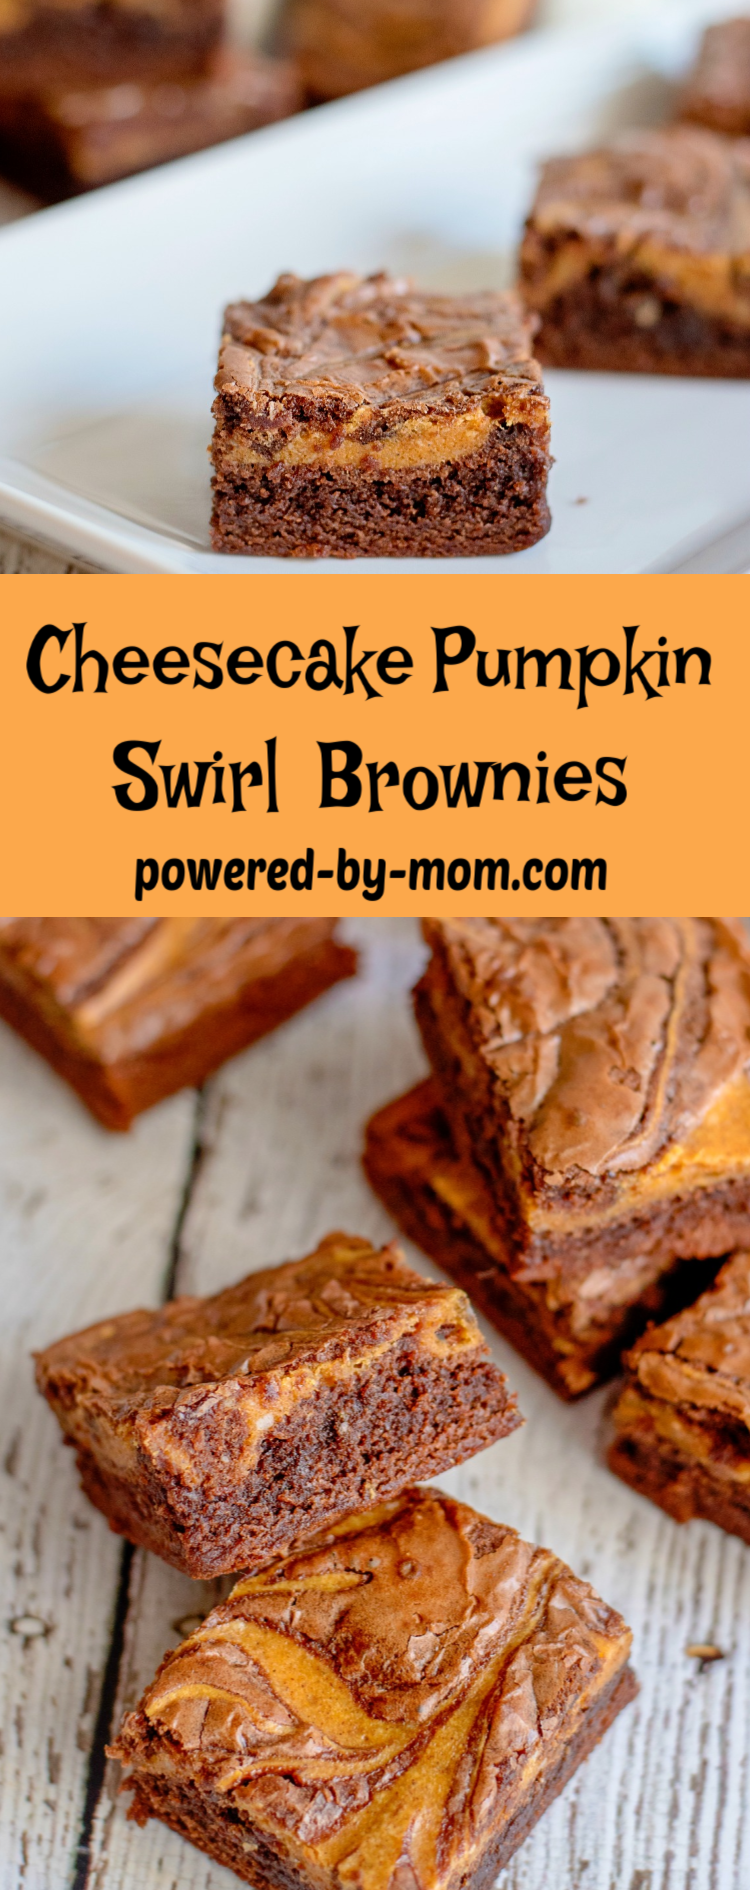 Pumpkin Swirl Cheesecake Brownie These Pumpkin Swirl Cheesecake Brownies are a perfect combination of boxed brownies with a homemade pumpkin cheesecake swirl that saves time but delivers an amazing flavor!